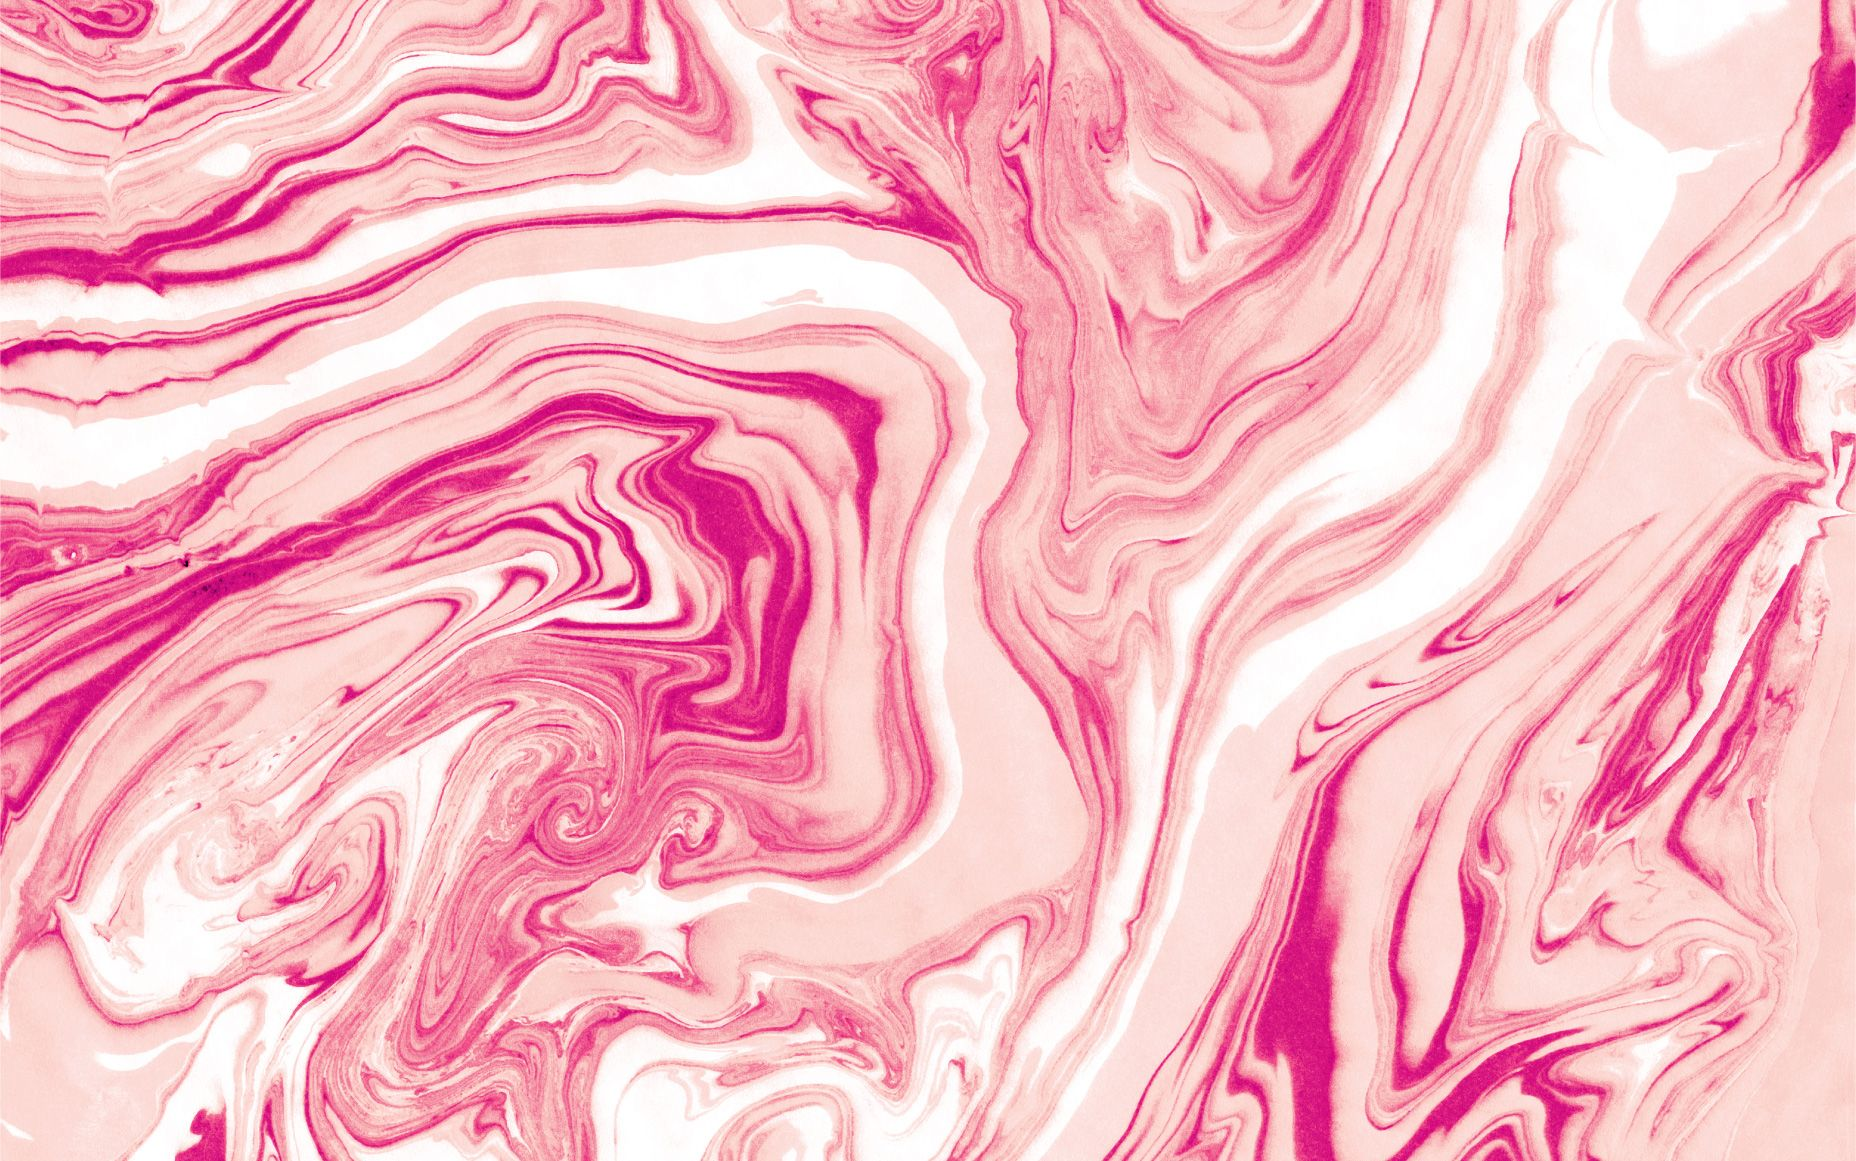 pinkmarbledesktopjpg 18562151161 pretty patterns